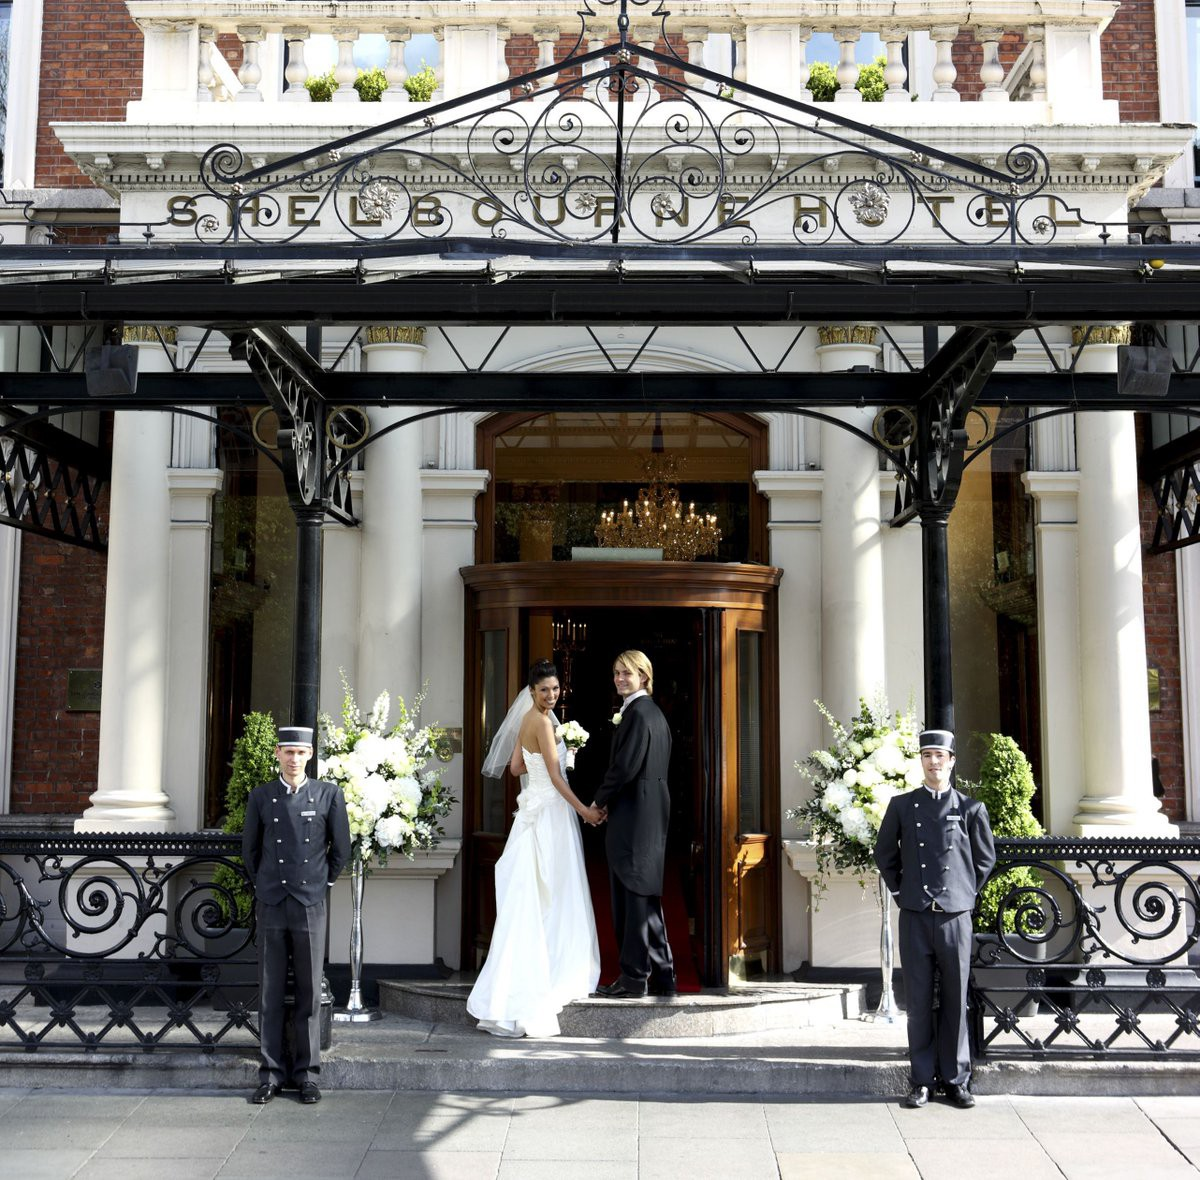 Top 10 Wedding Venues 2017